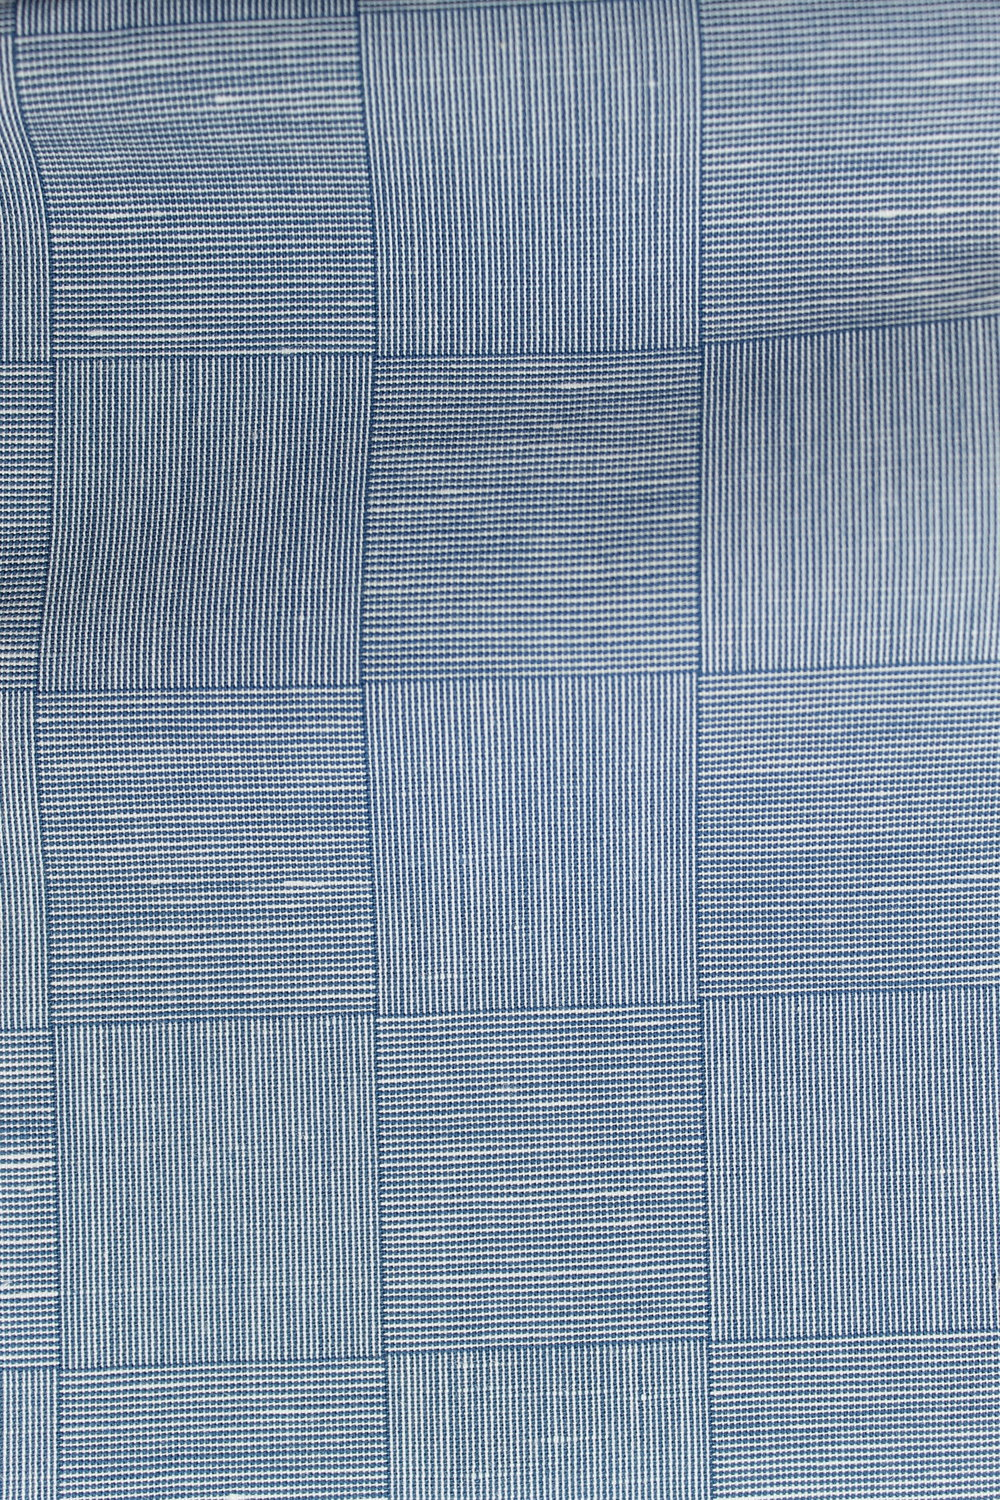 L127 Blue Checkerboard Cotton Twill.JPG